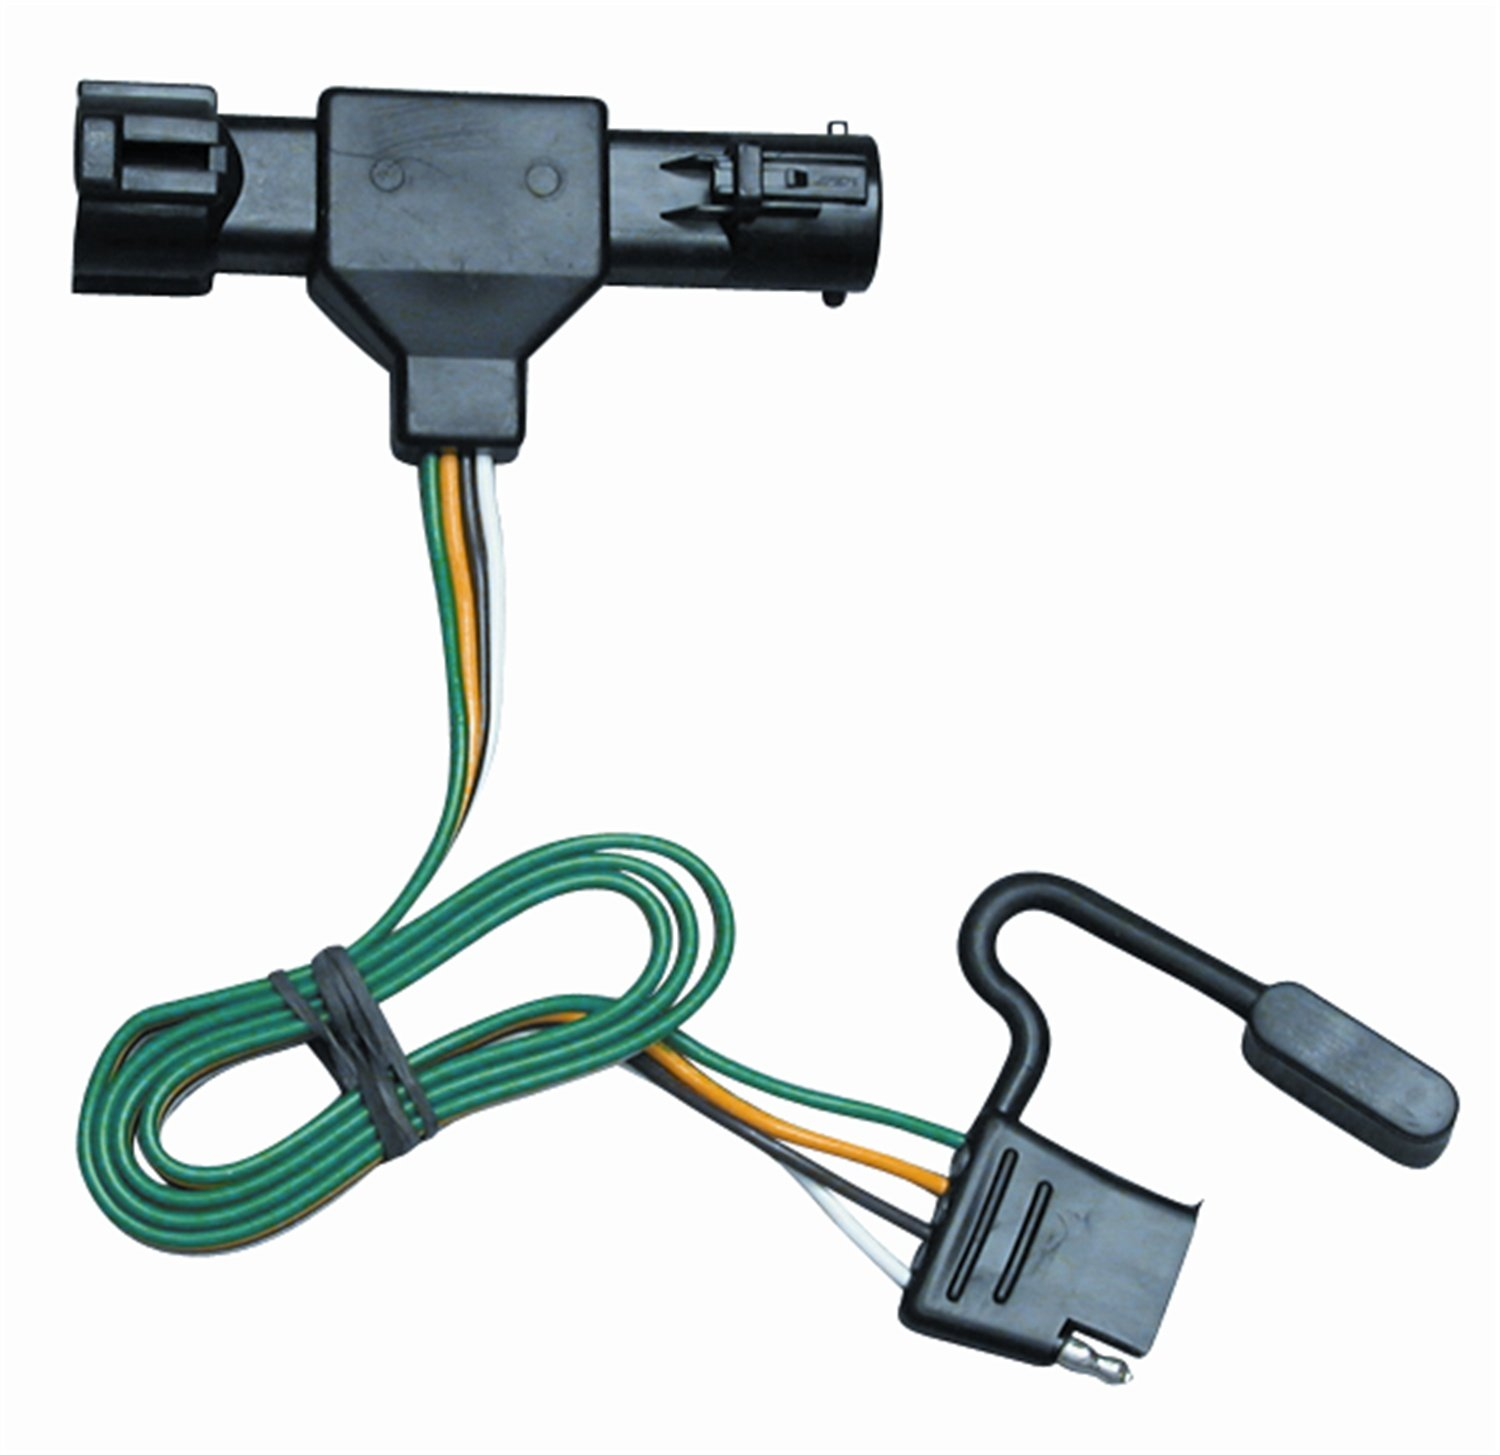 amazon com vehicle to trailer wiring connector for 86 92 ford rh amazon com ford terminal connectors ford wiring connector pins